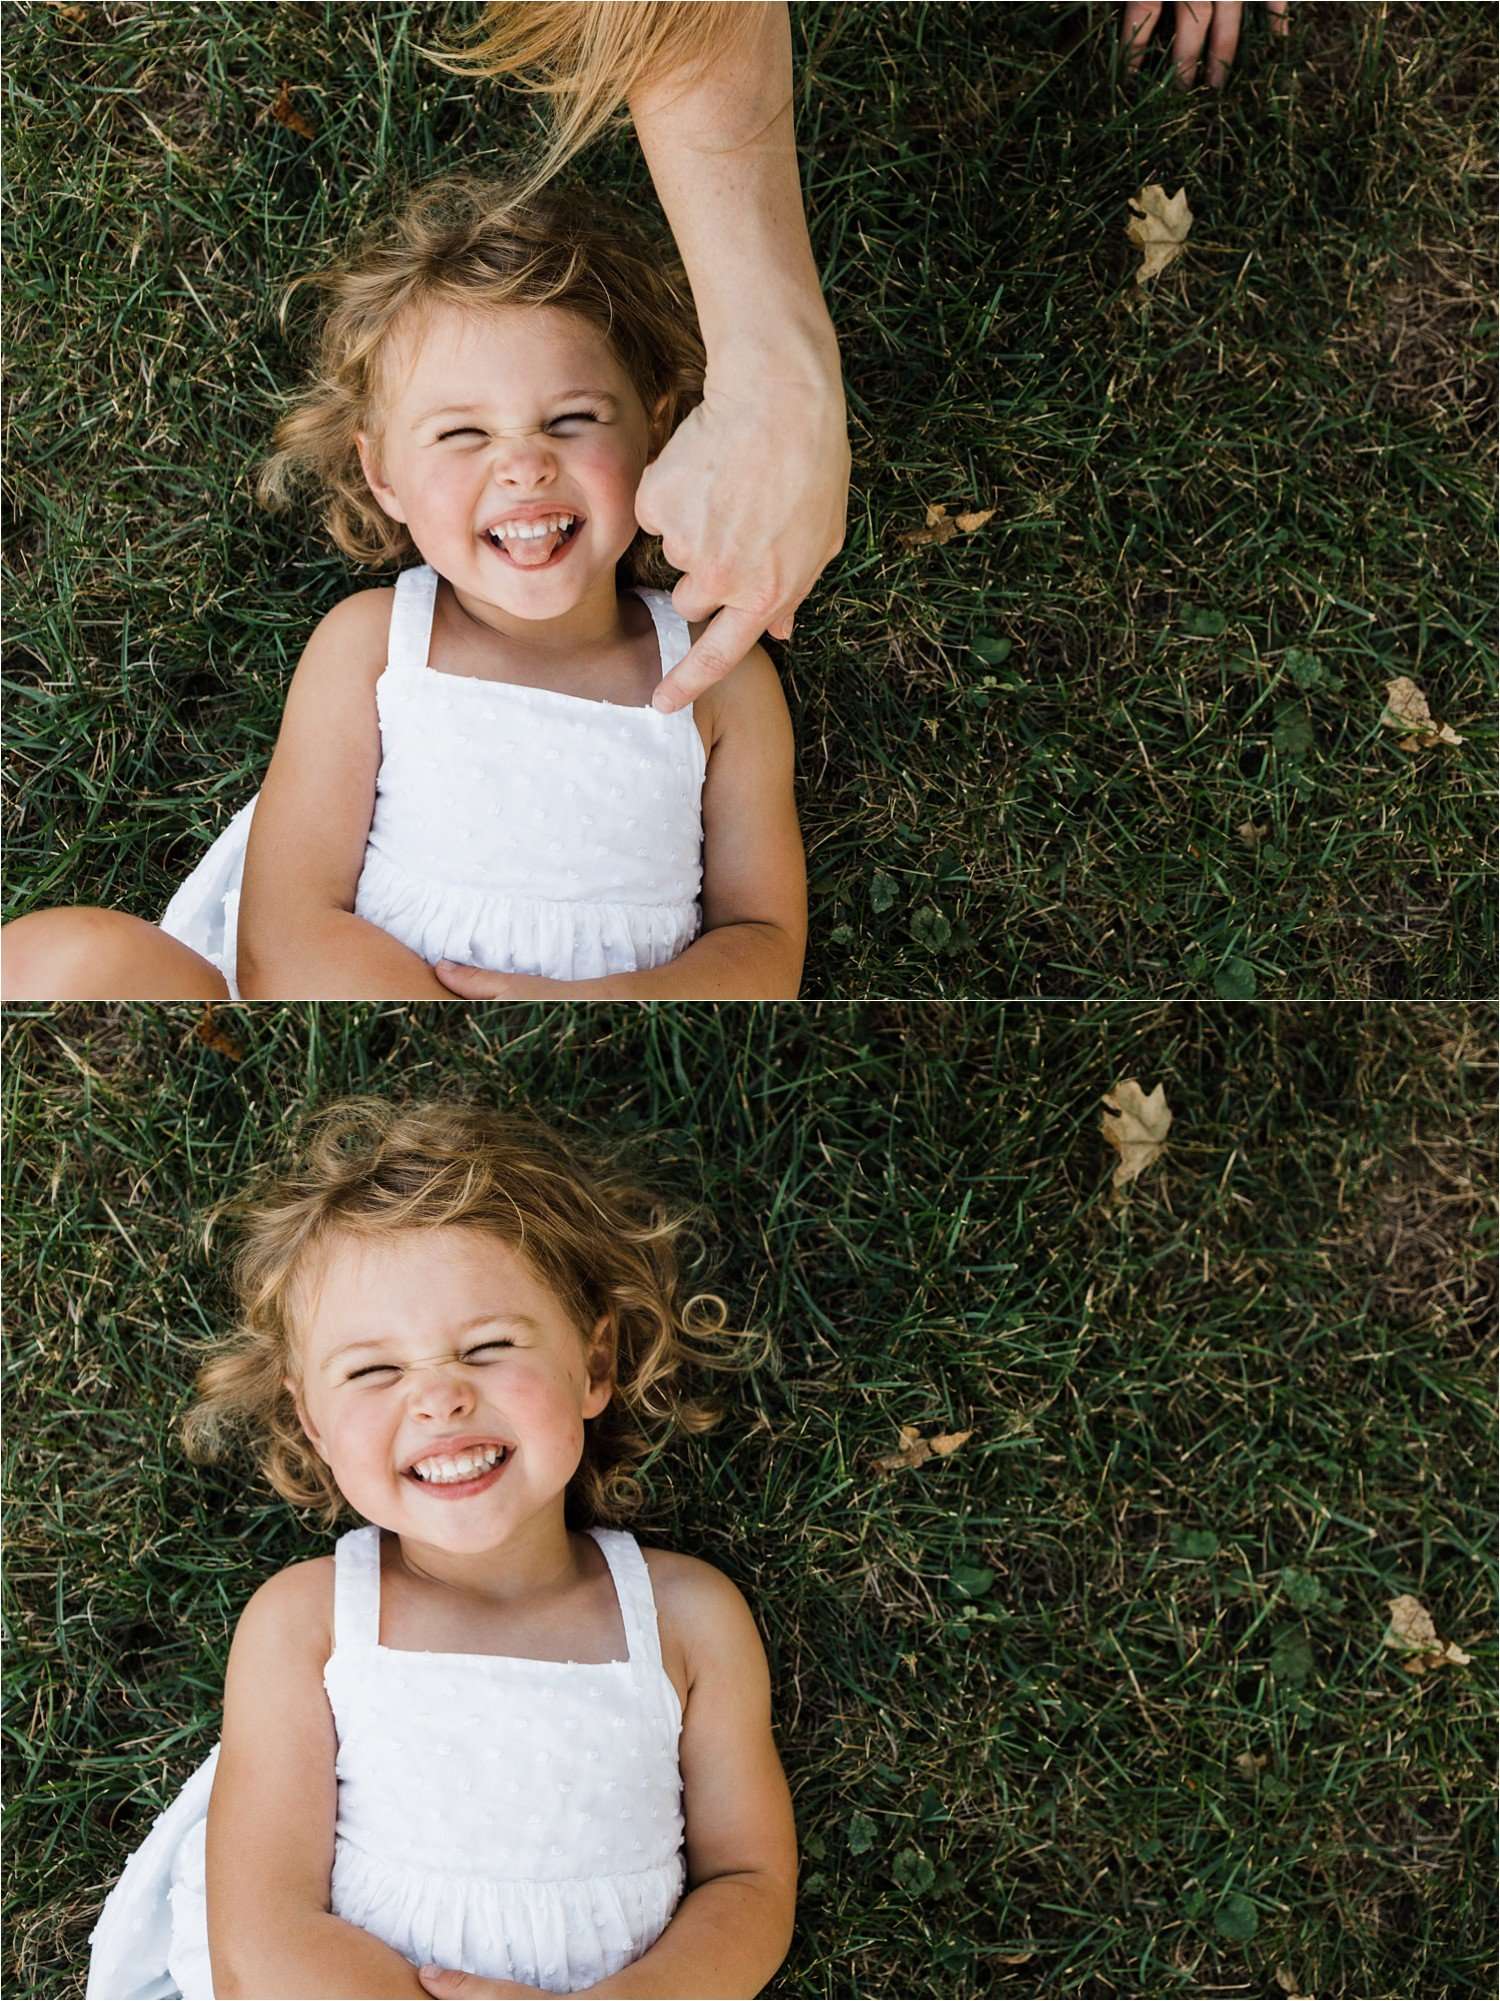 child laughing in the grass